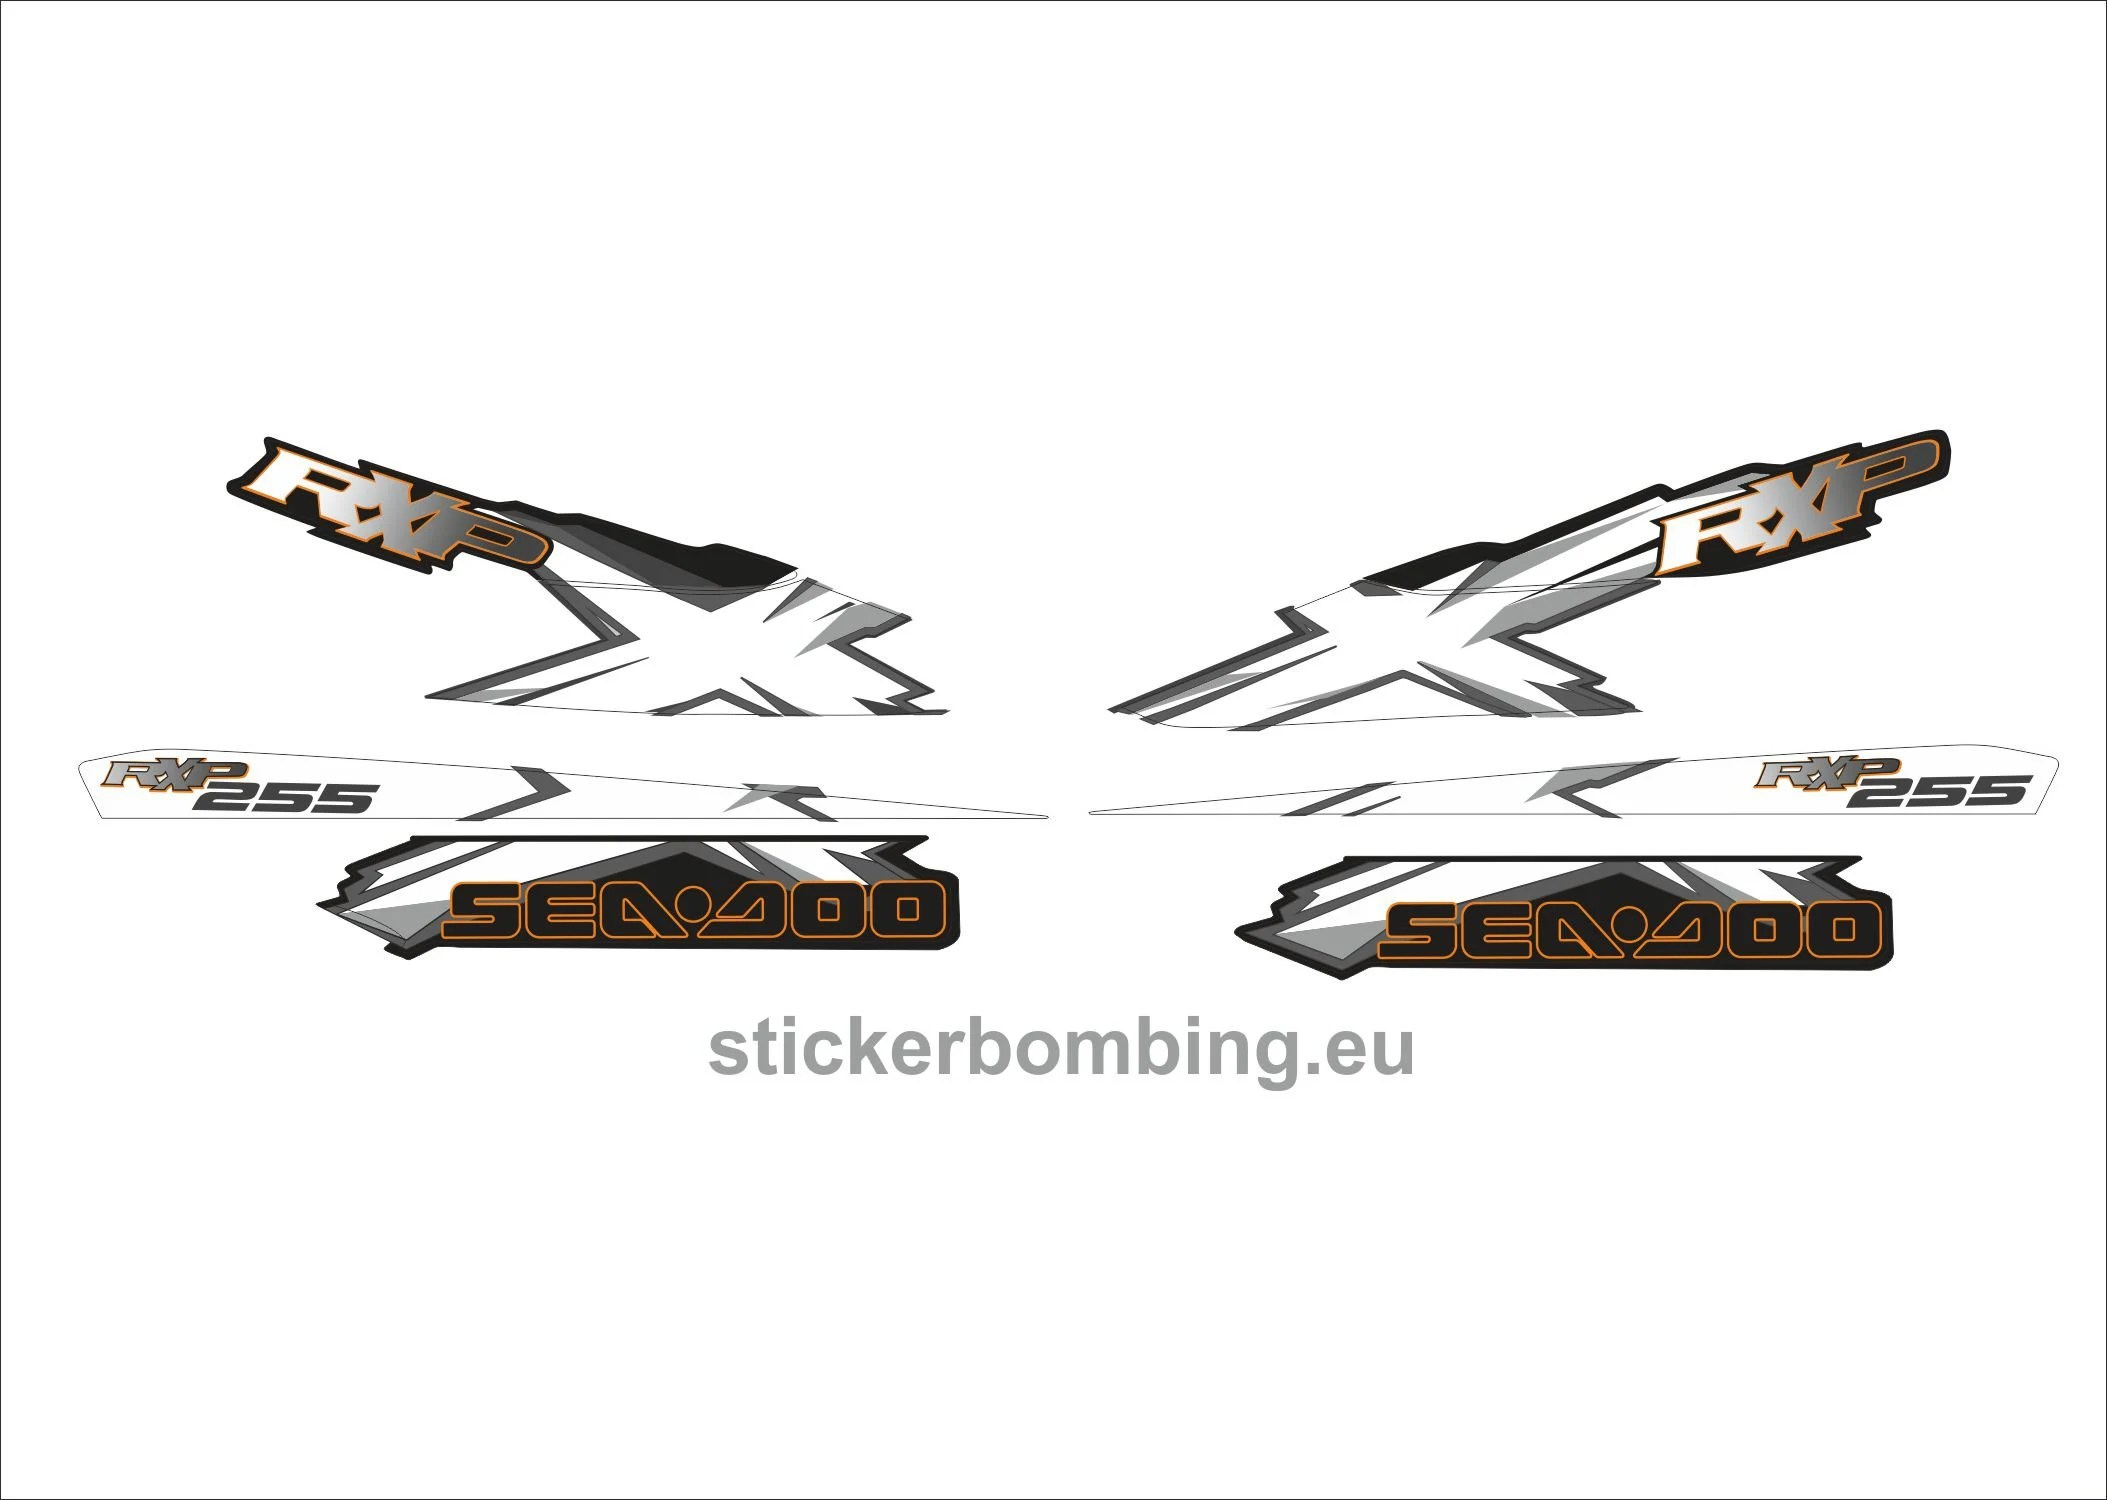 Sea-Doo RXP-X 255 model 2008-2009 Jet Ski Full Set Stickers